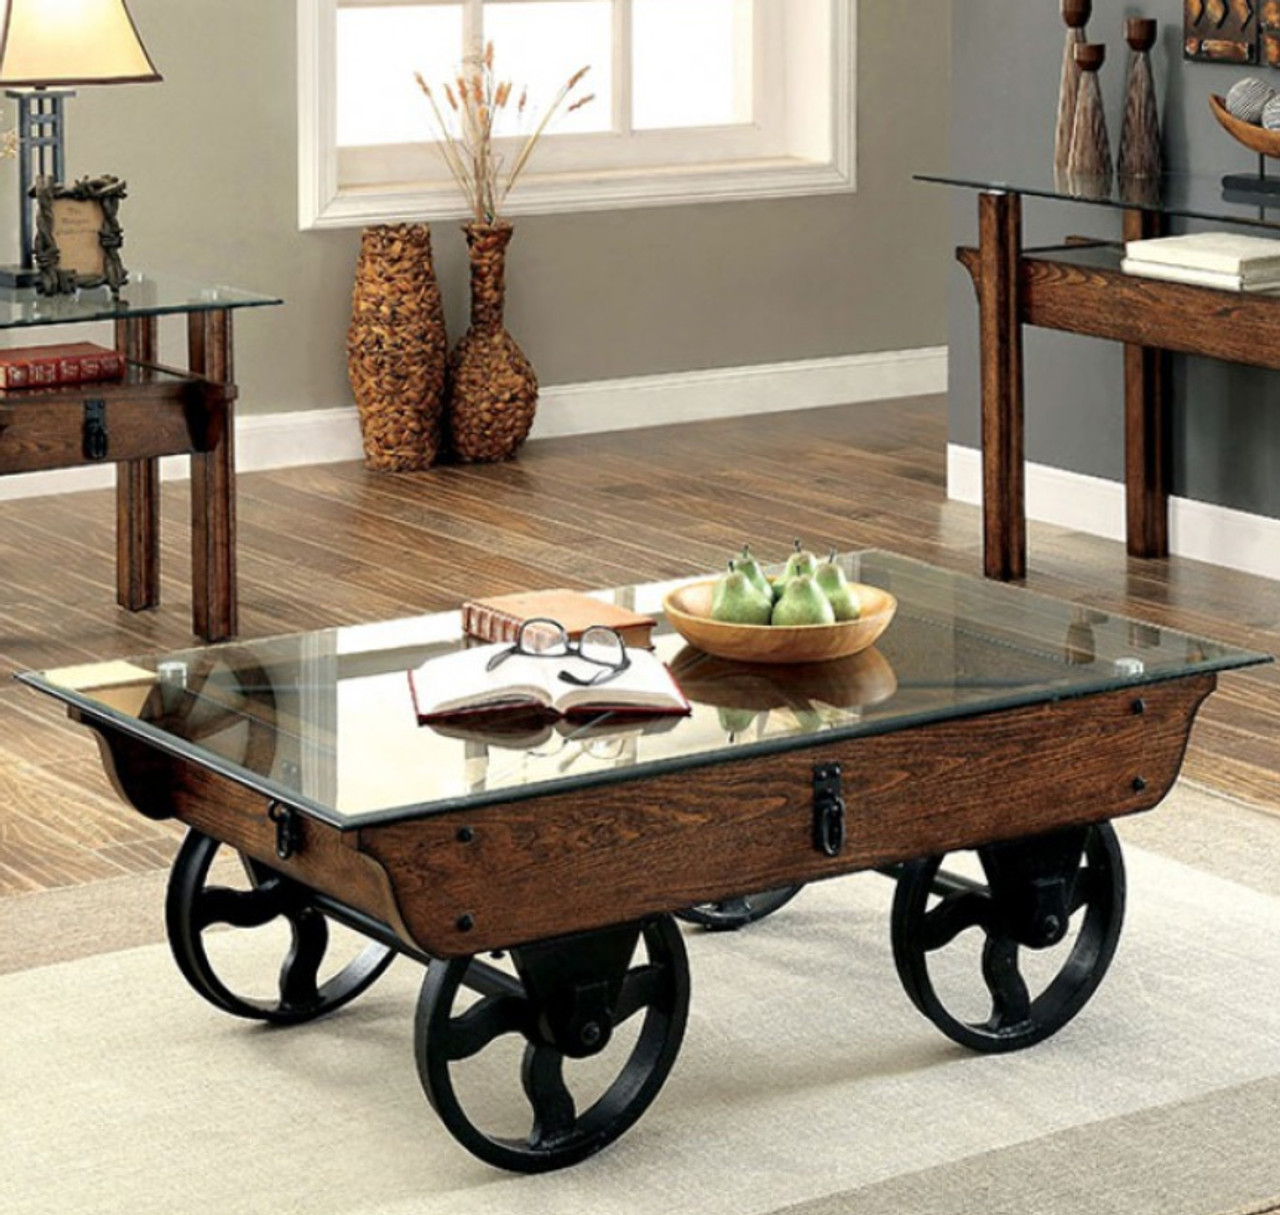 Cm4318 Industrial Glass Rustic Wood Coffee Table